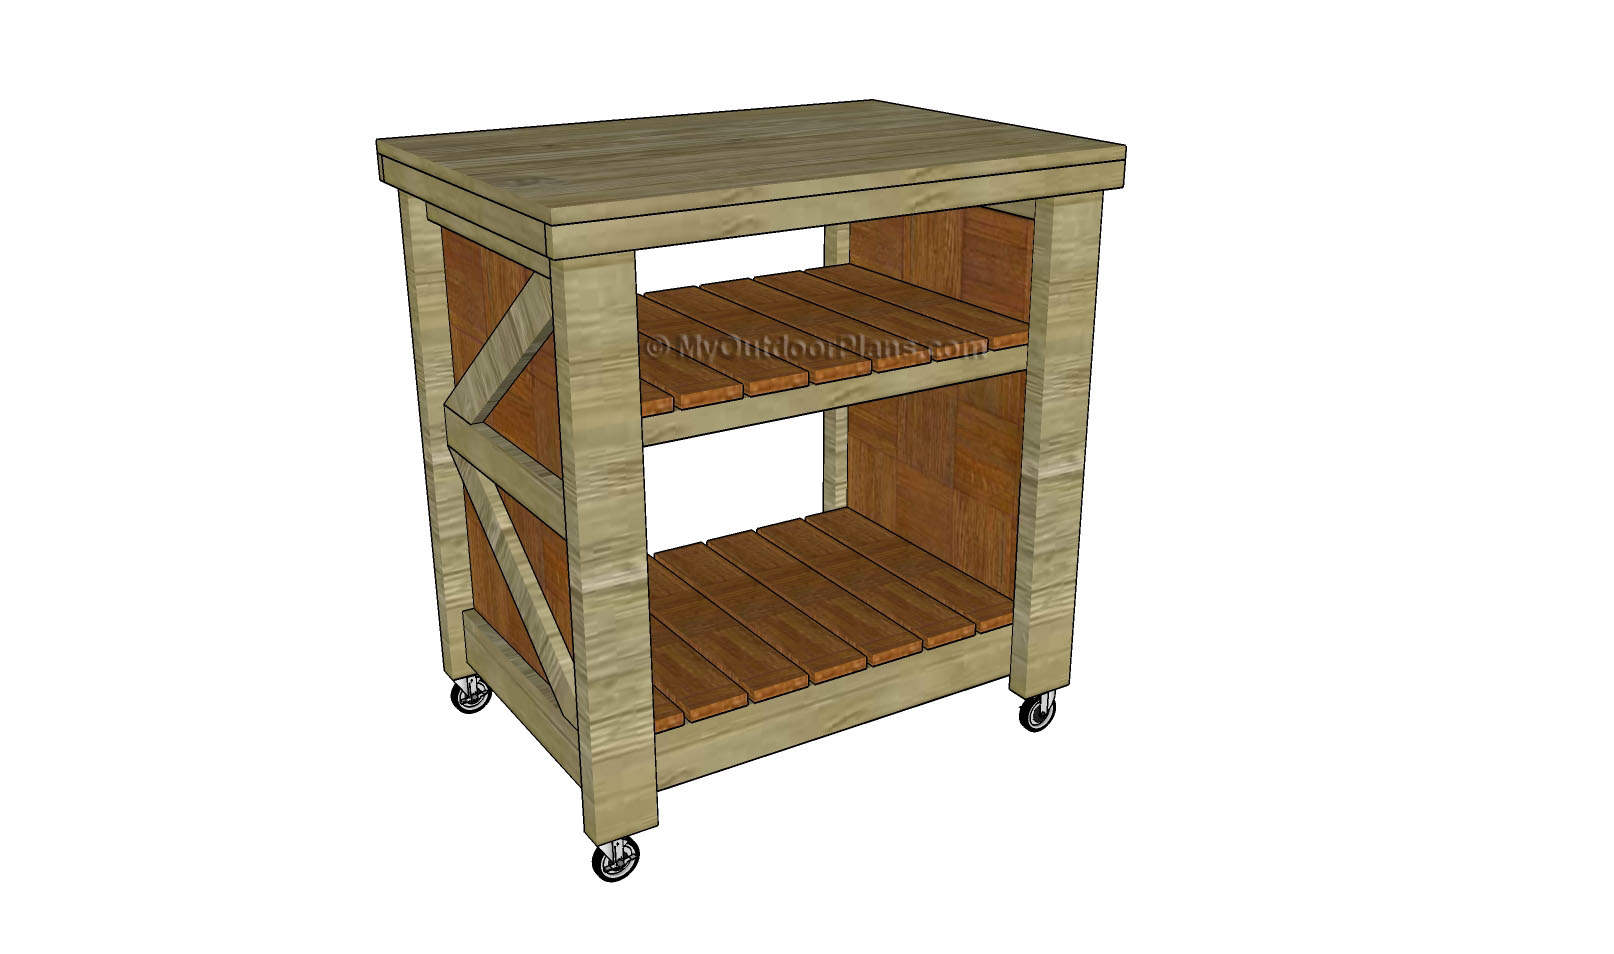 kitchen island table plans kitchen table plans myoutdoorplans free woodworking 5176